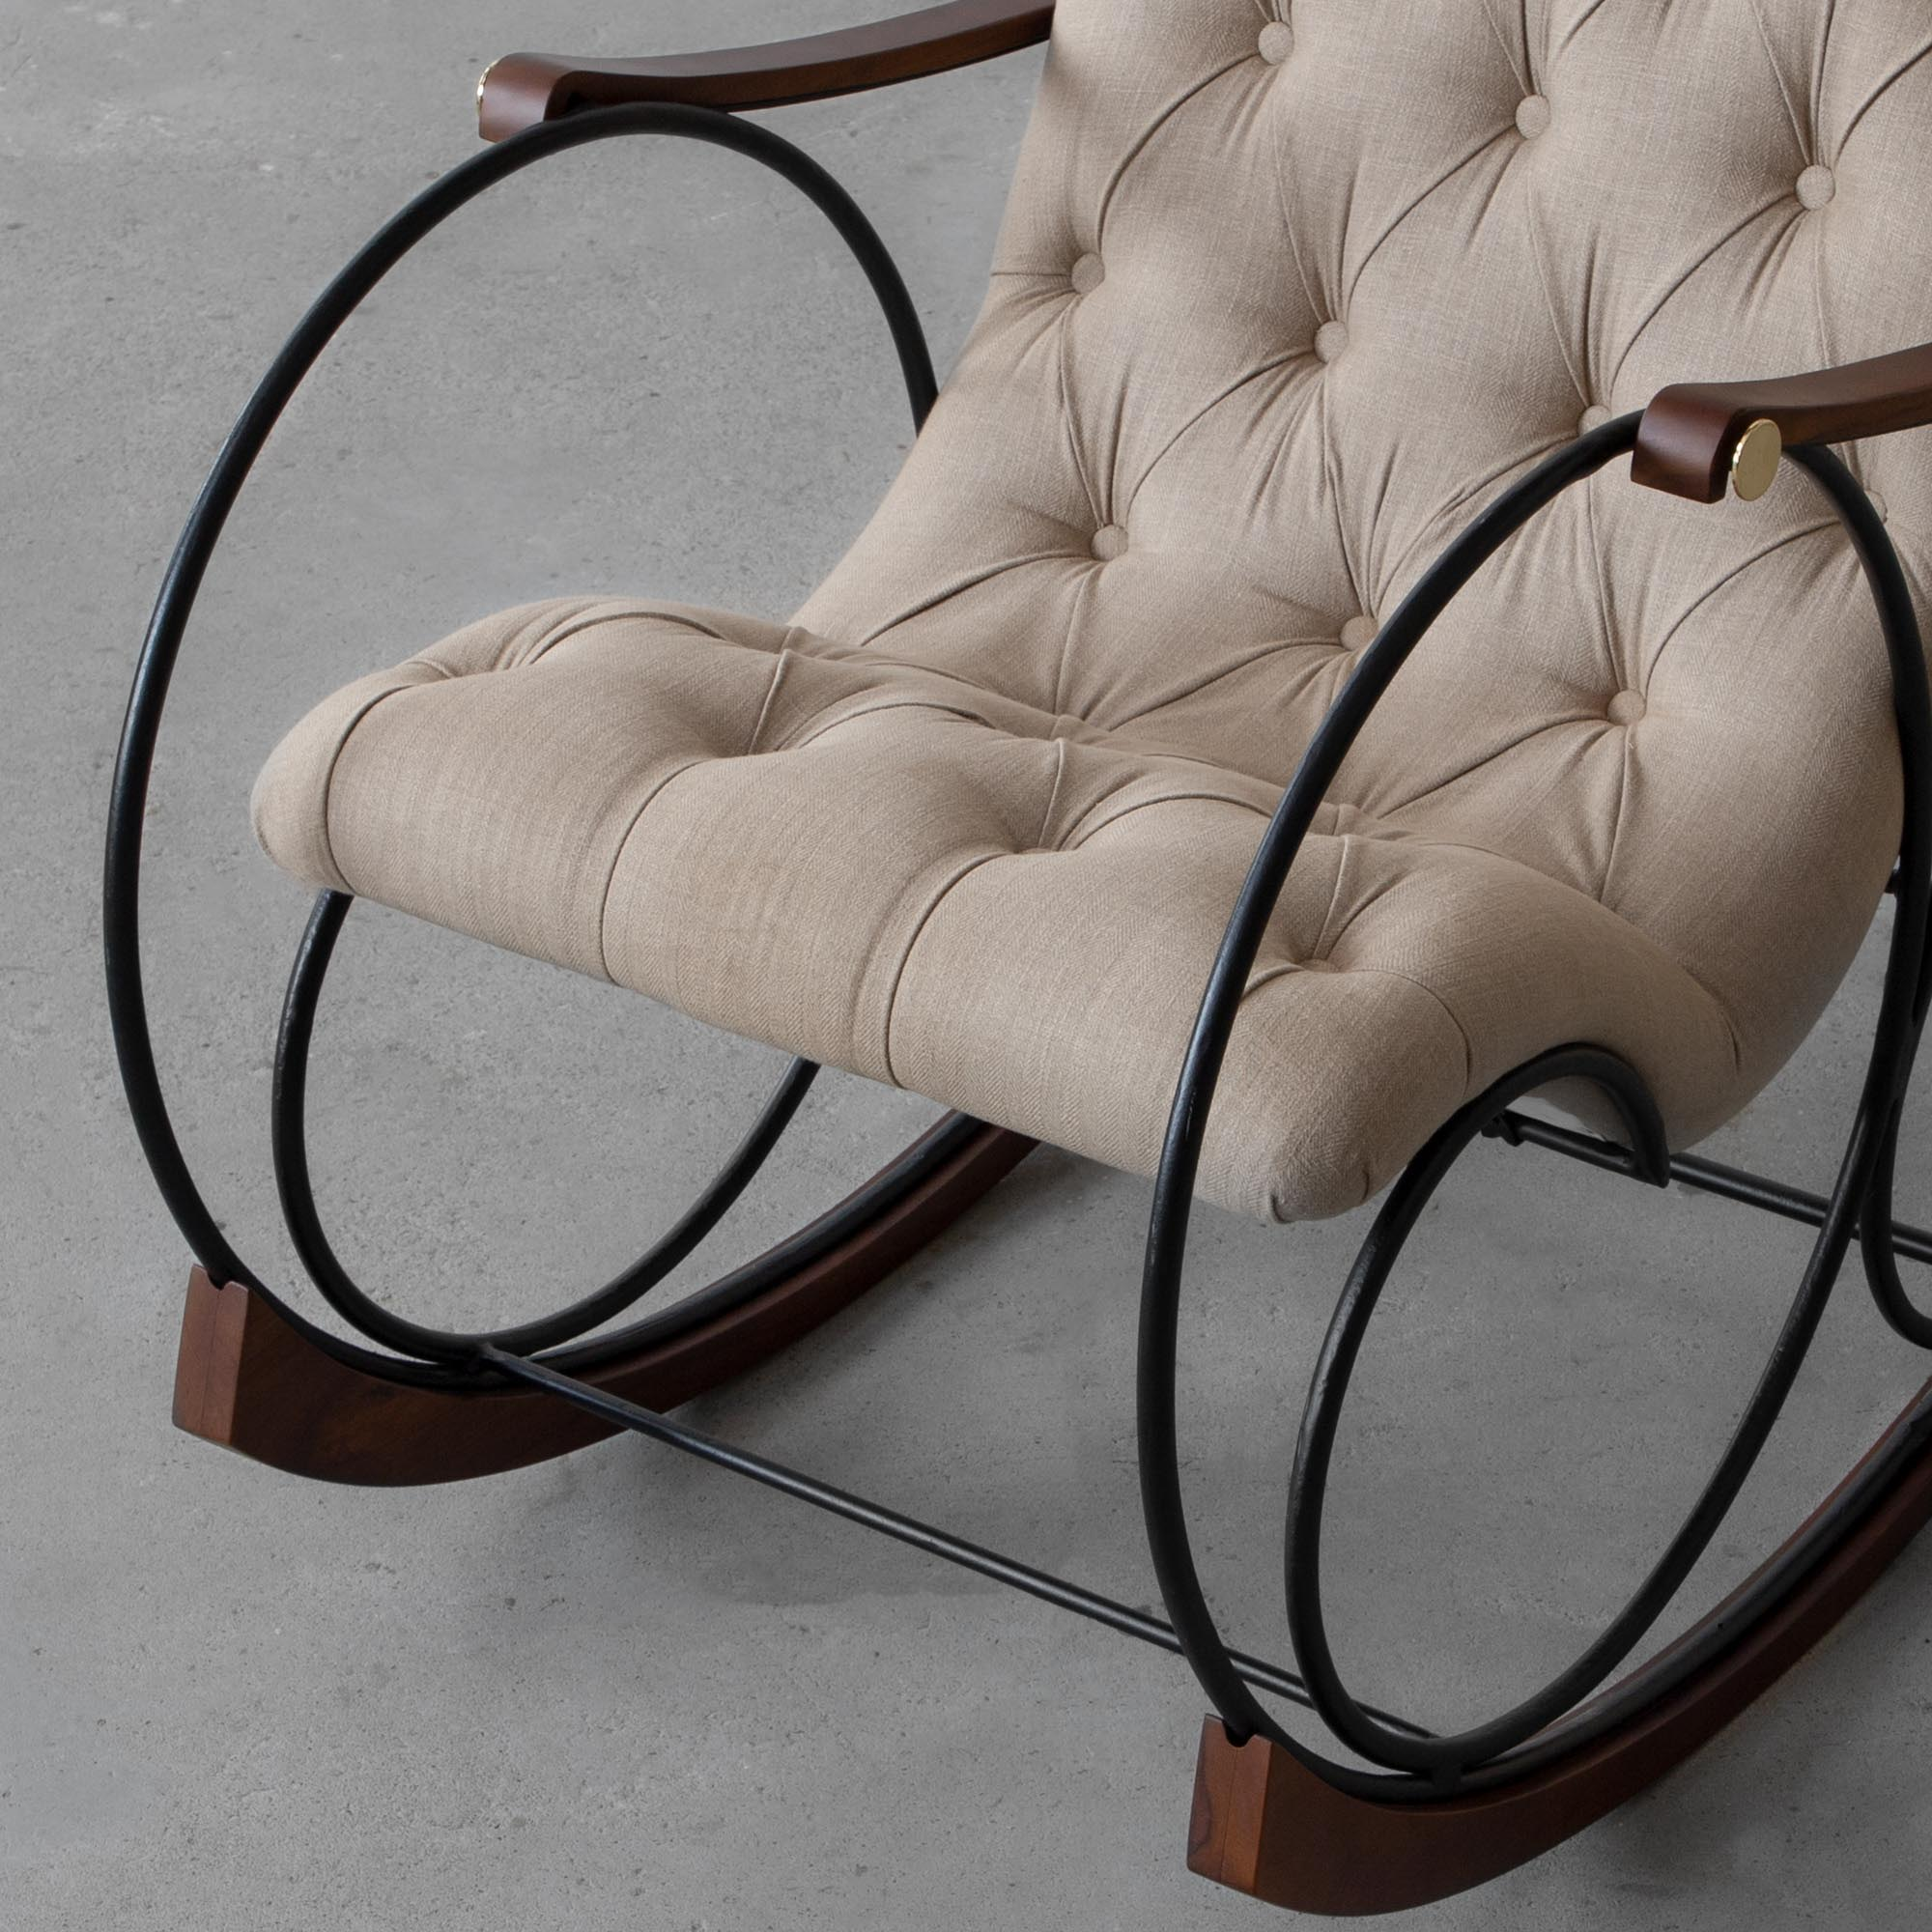 Chester Ornate Resting Chair